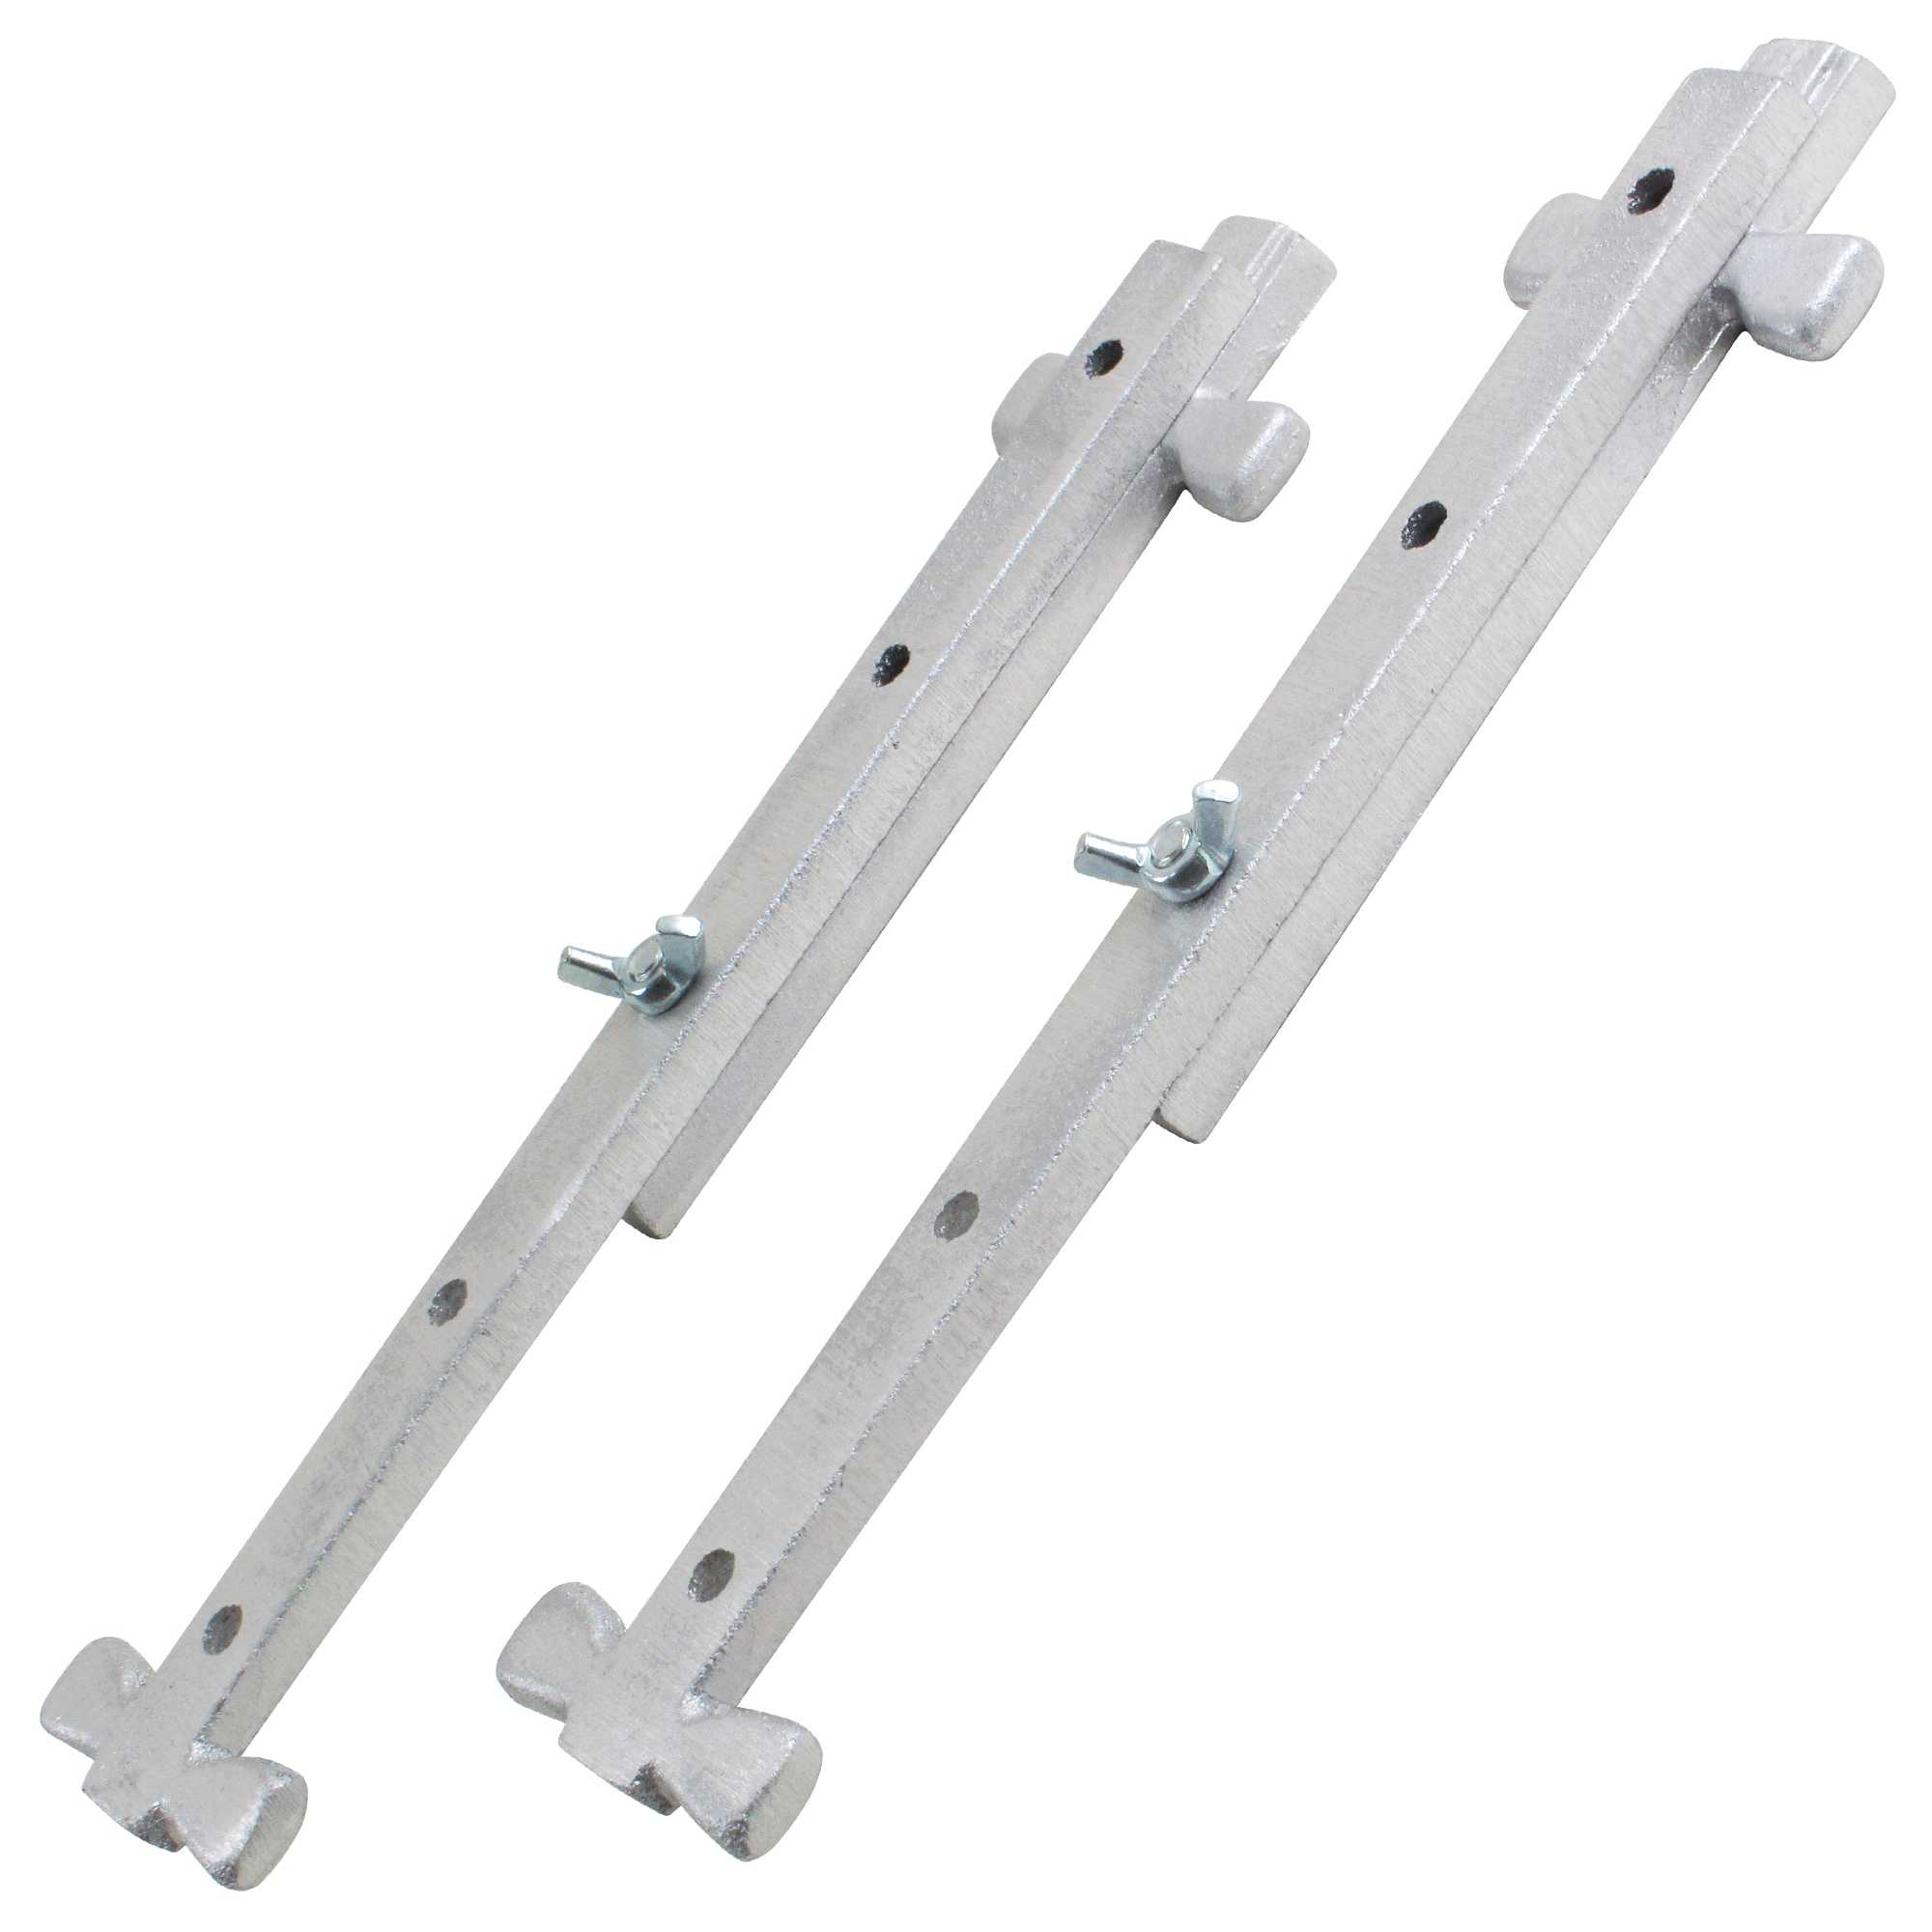 Kraft Tool Co. The Original Adjustable Line Stretcher (Pair)